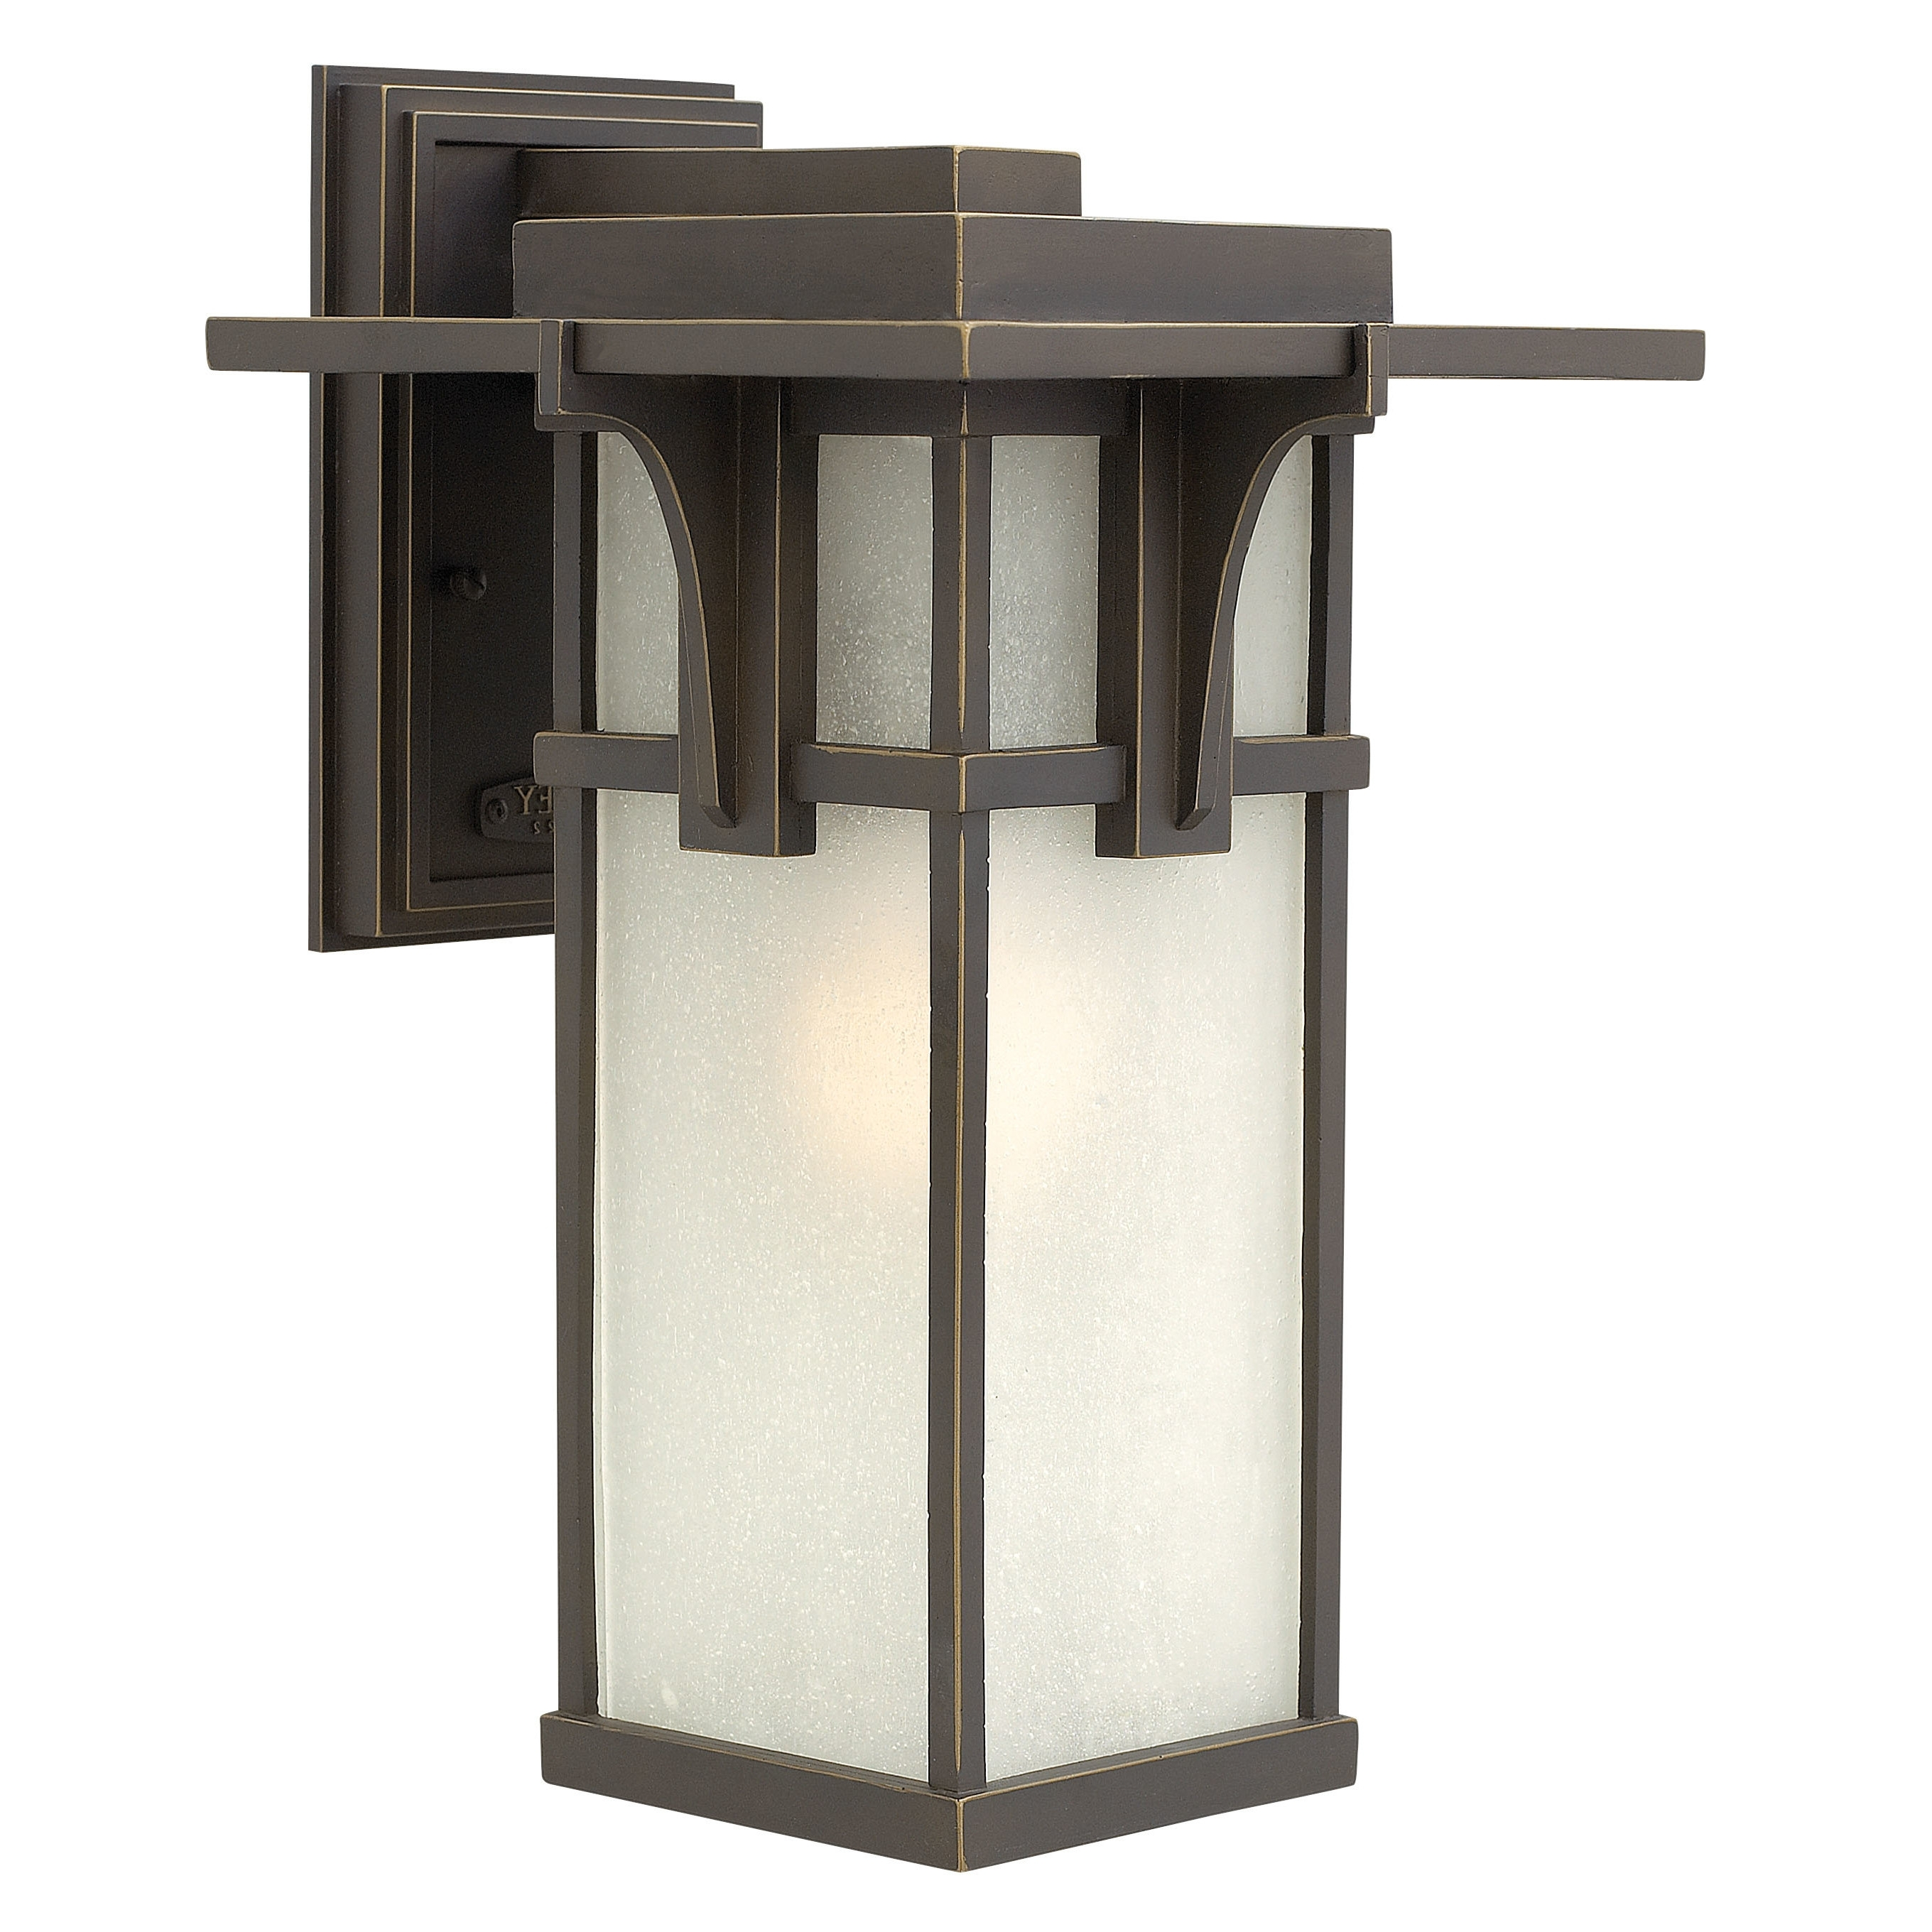 Missionshaker Outdoor Wall Lighting Wayfair Manhattan 1 Light Throughout Latest Outdoor Lighting And Light Fixtures At Wayfair (View 7 of 20)